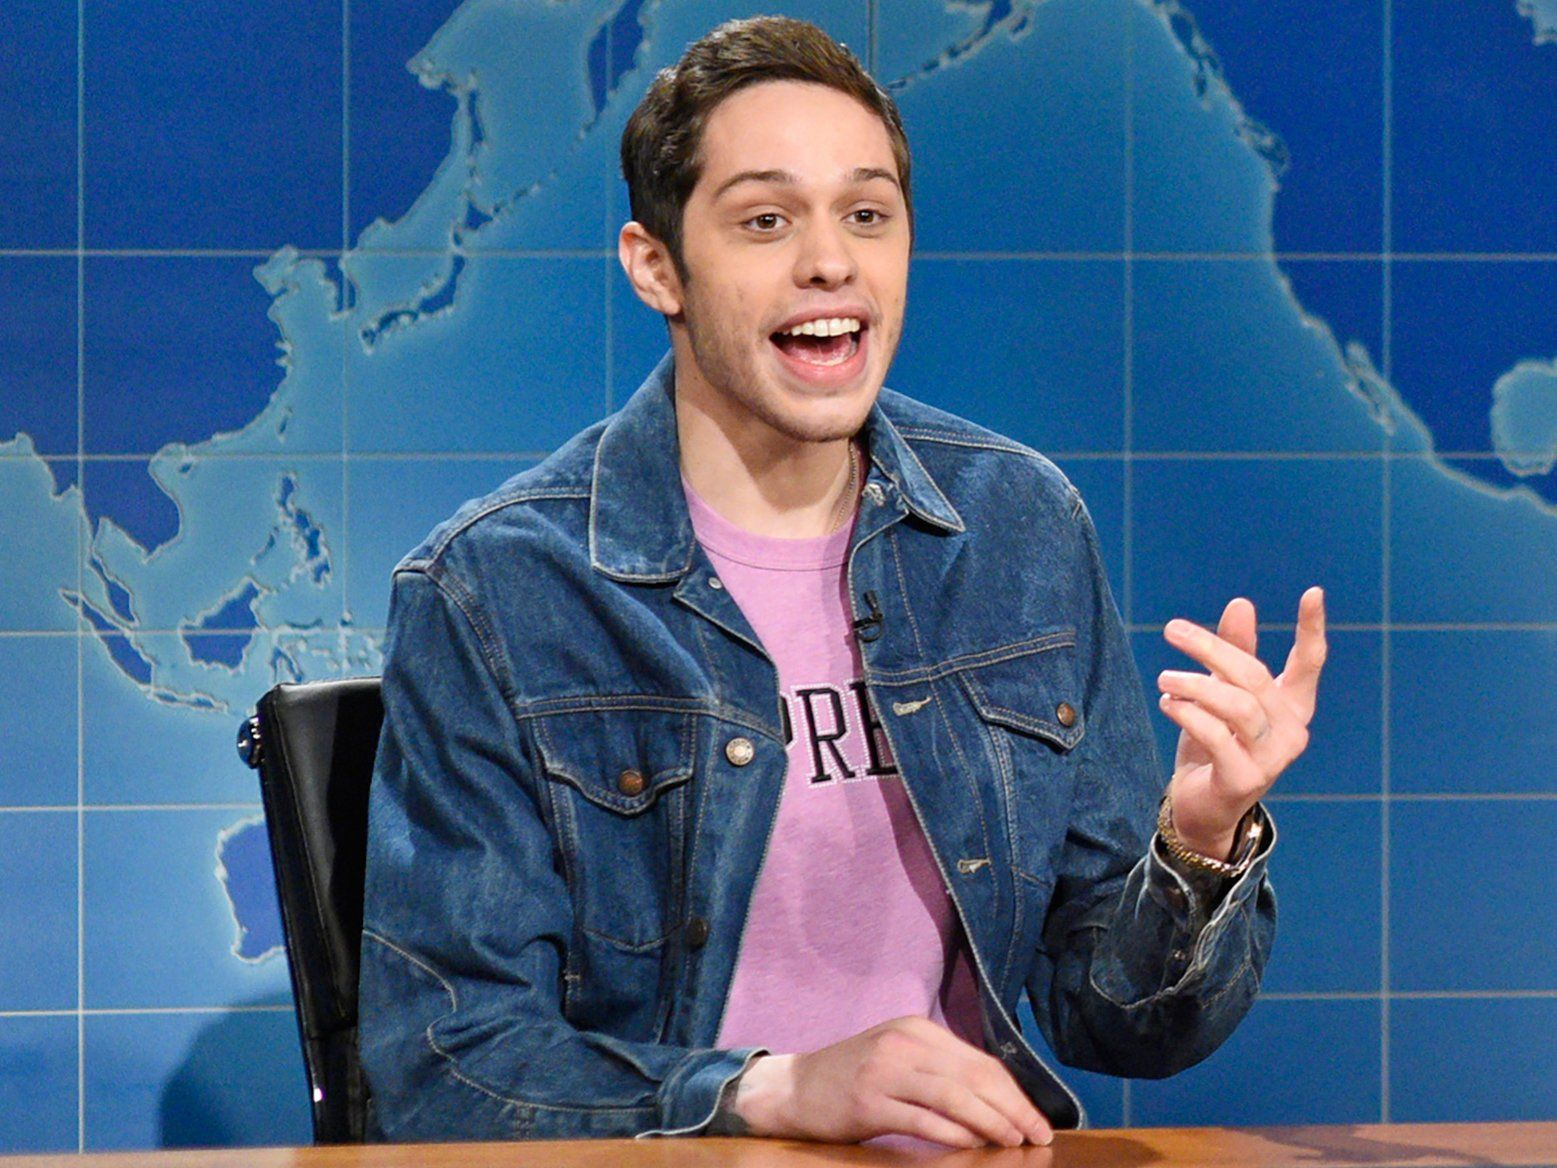 Pete Davidson is set to star in a comedy film partly based